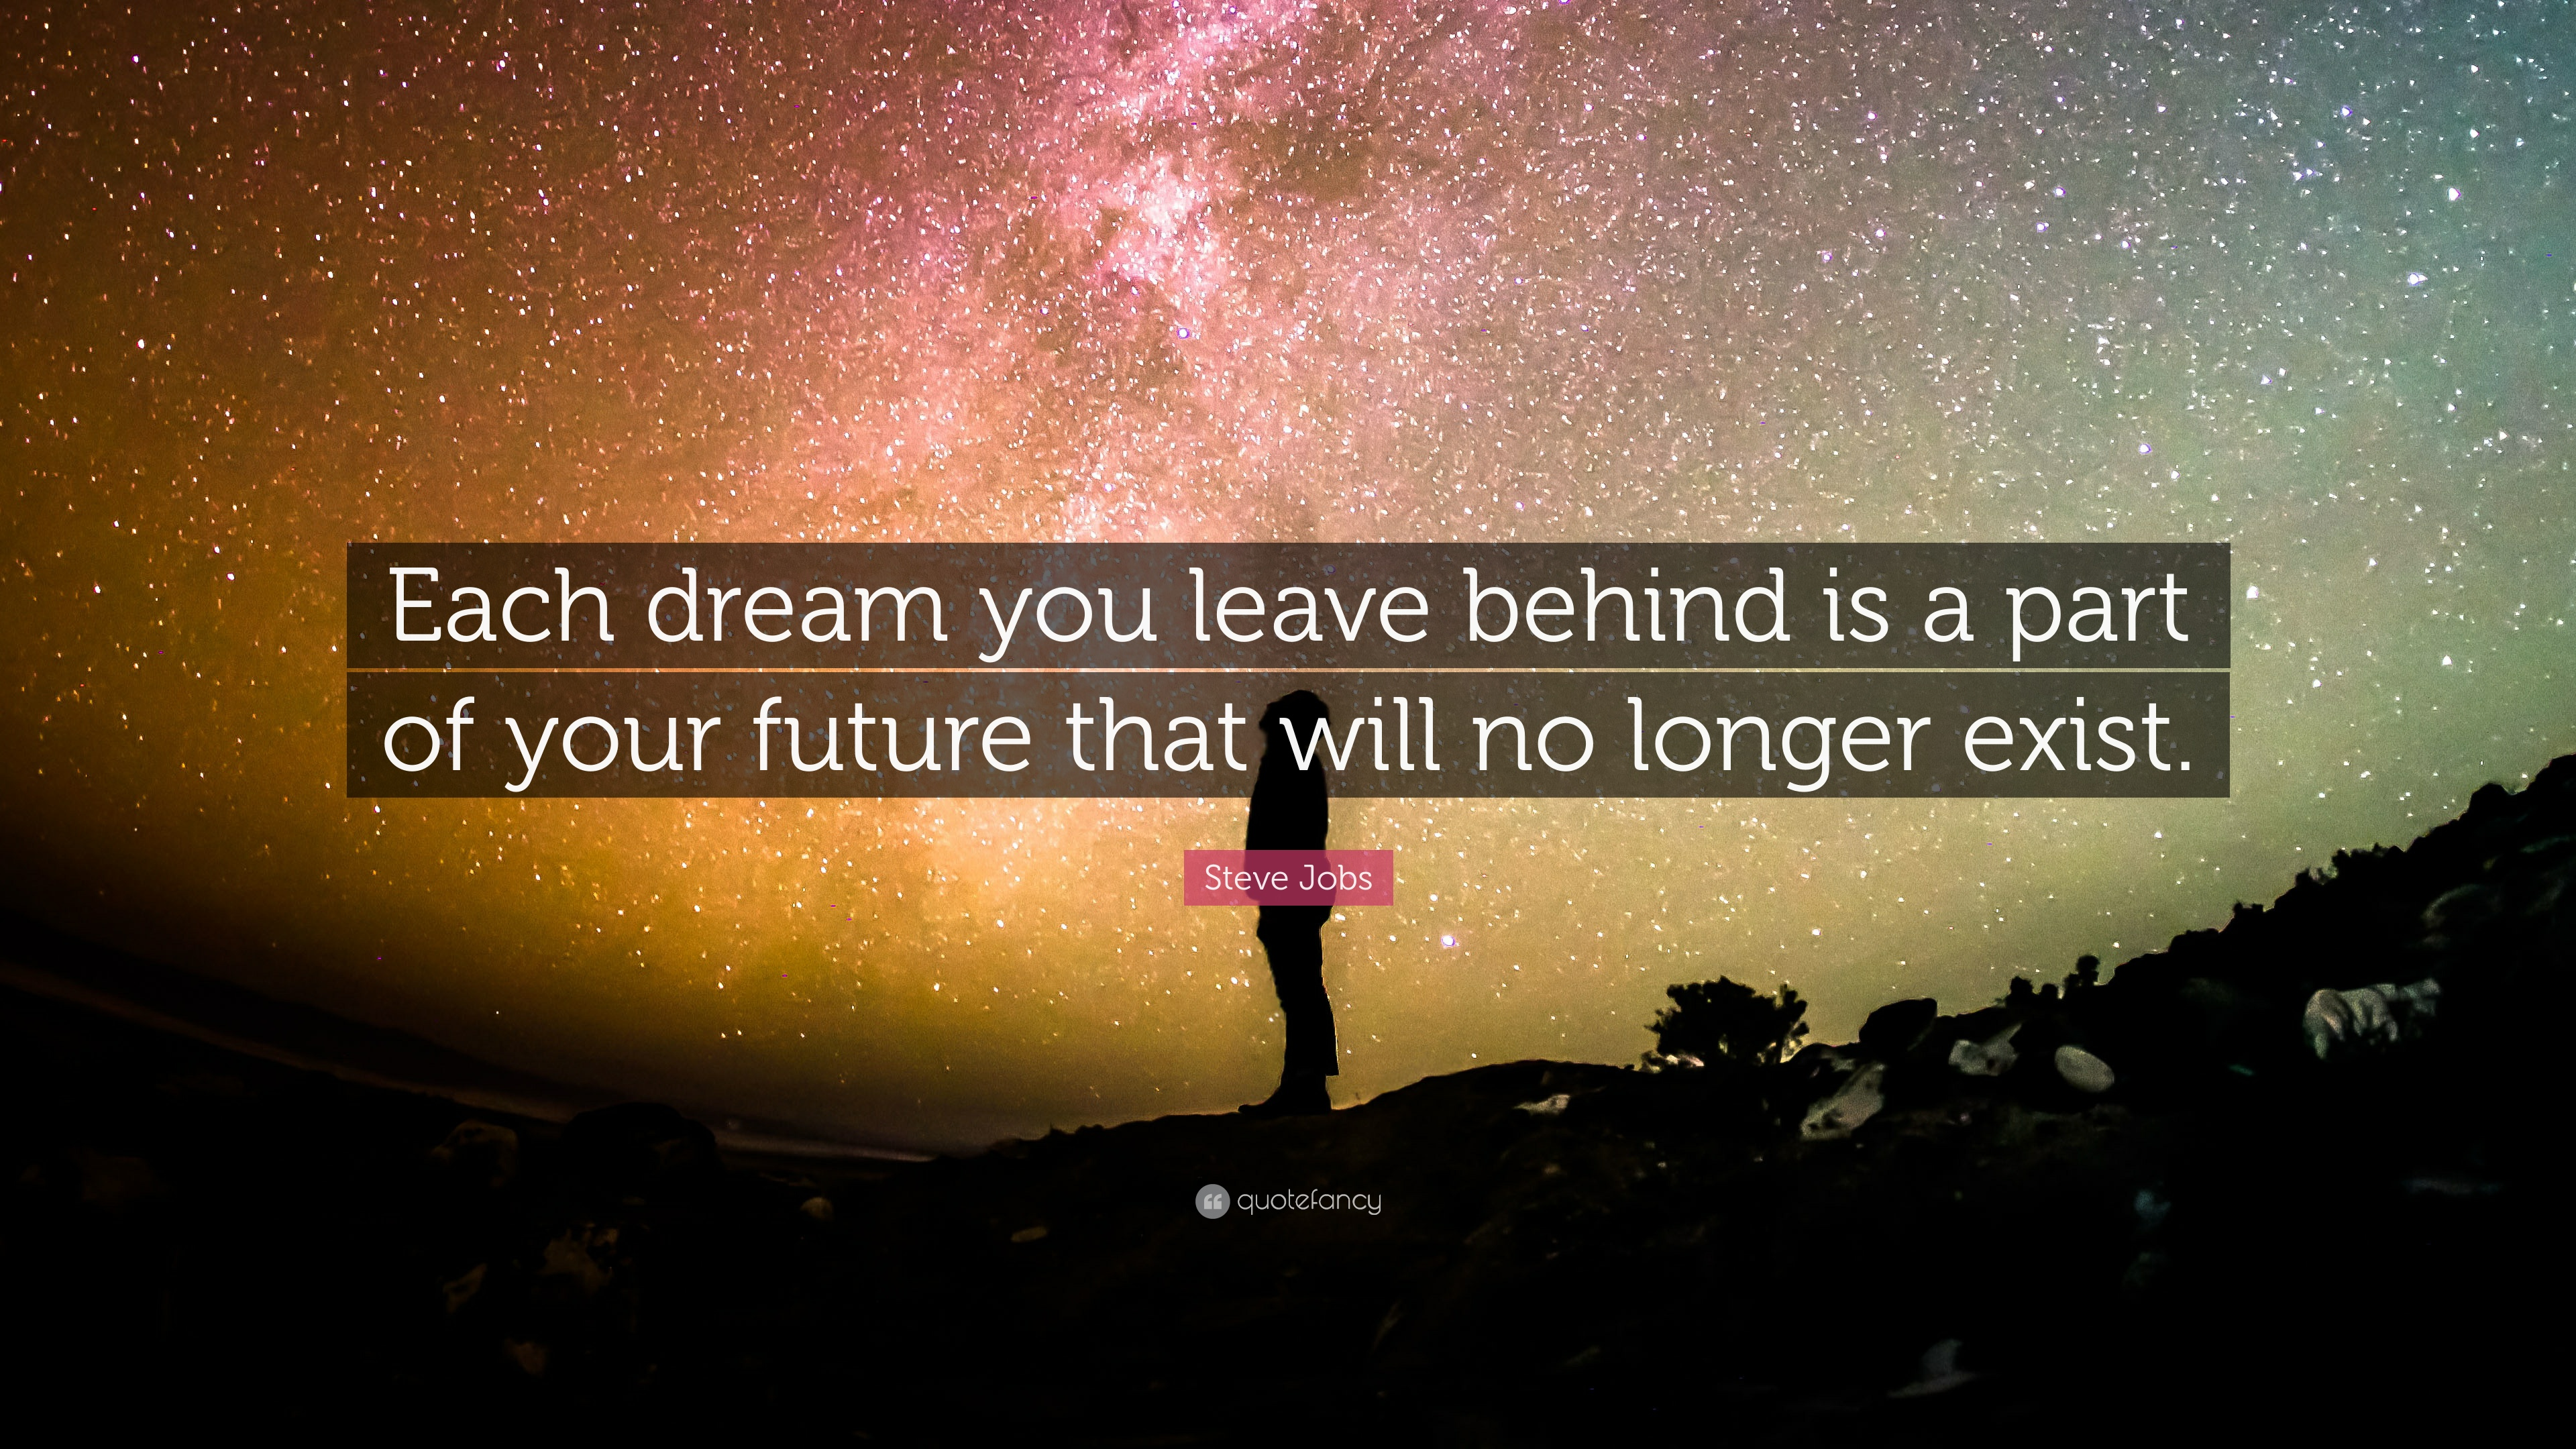 Quotes About Dreams Each Dream You Leave Behind Is A Part Of Your Future